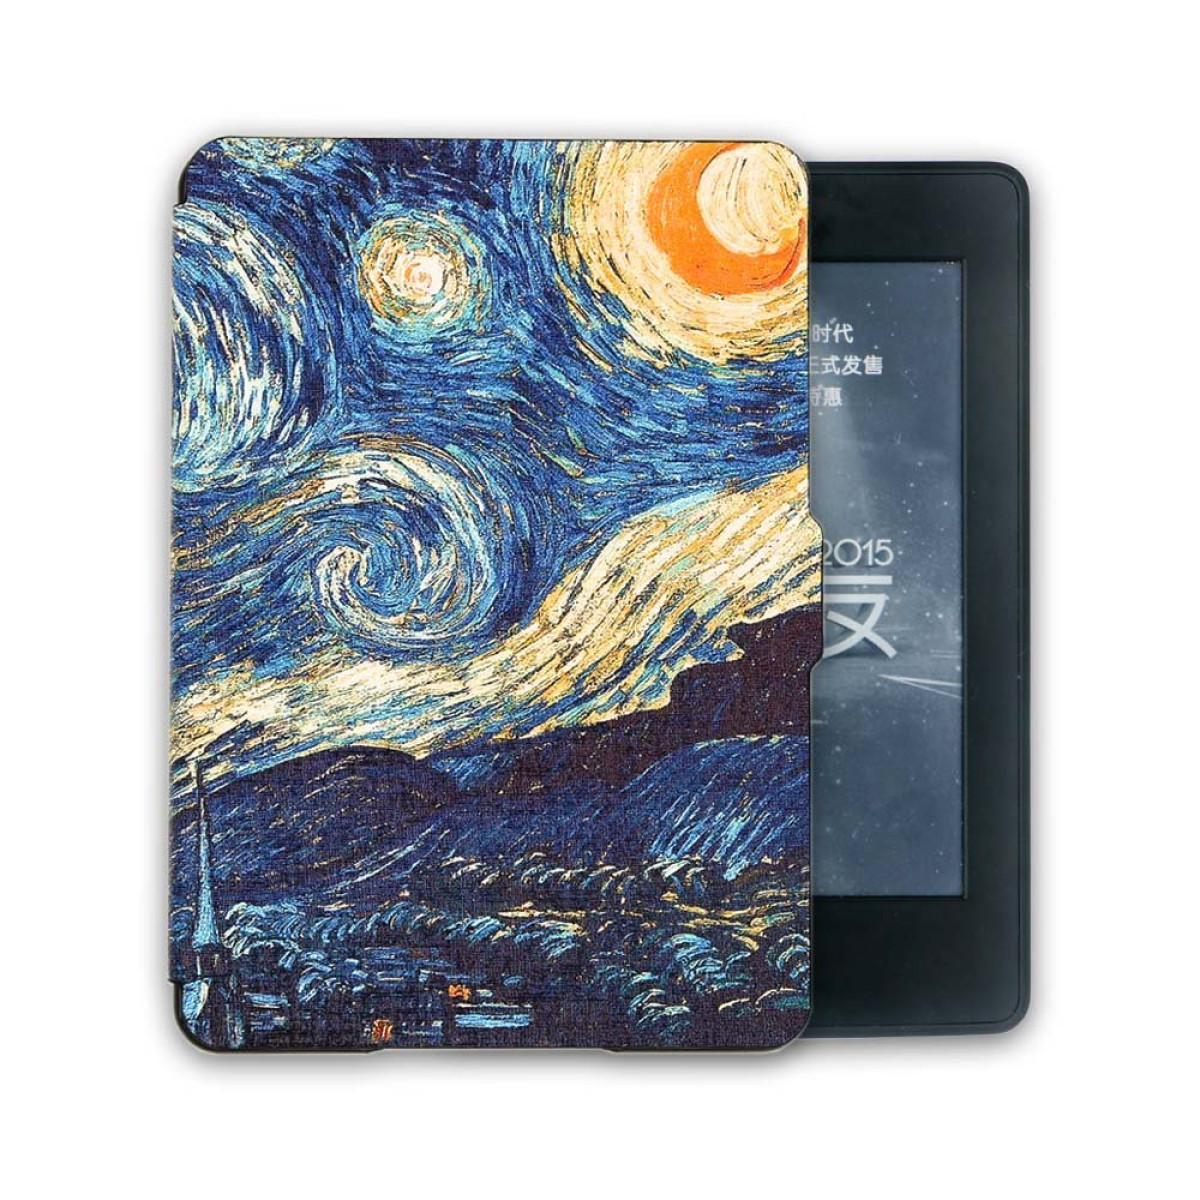 Kandouren Case Cover for Kindle Paperwhite - Van gogh Starry Night  Smartshell,Light Slim Leather Cover with Autowake(Fit 6 inch Amazon Kindle